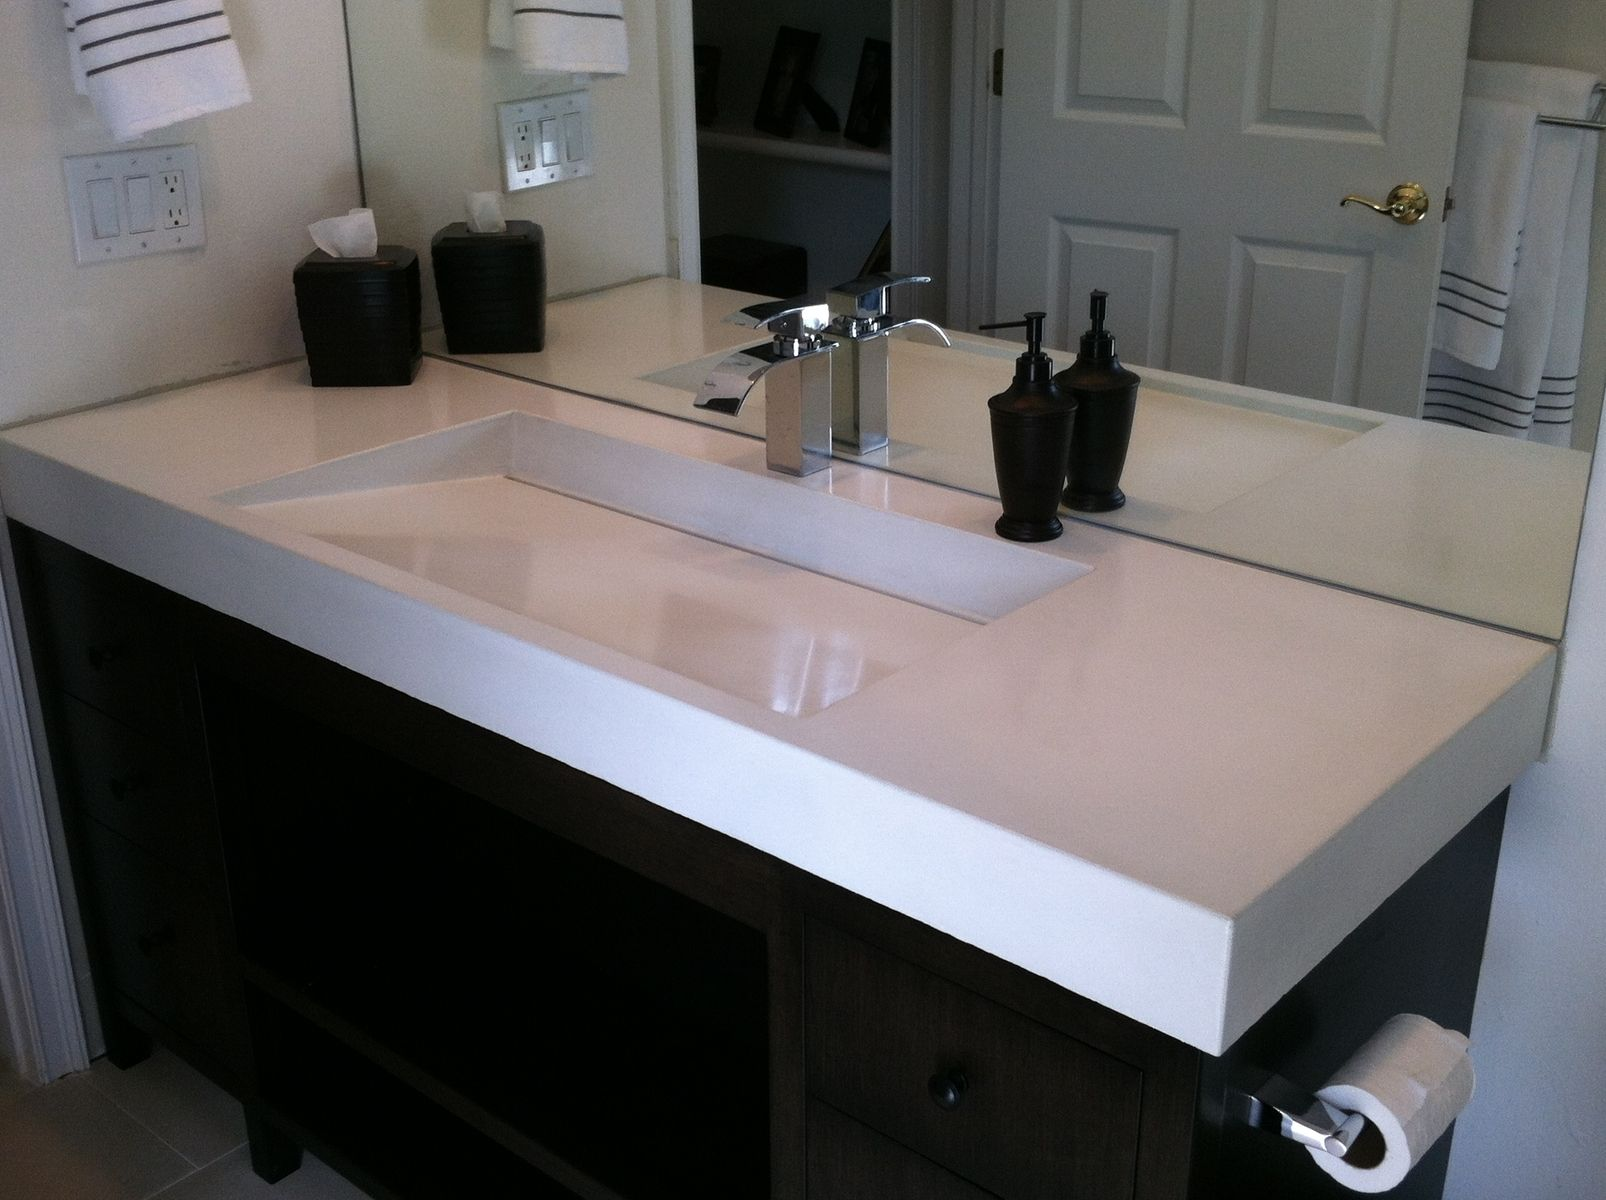 concrete kitchen sink aid professional hand crafted ramp by béton studio